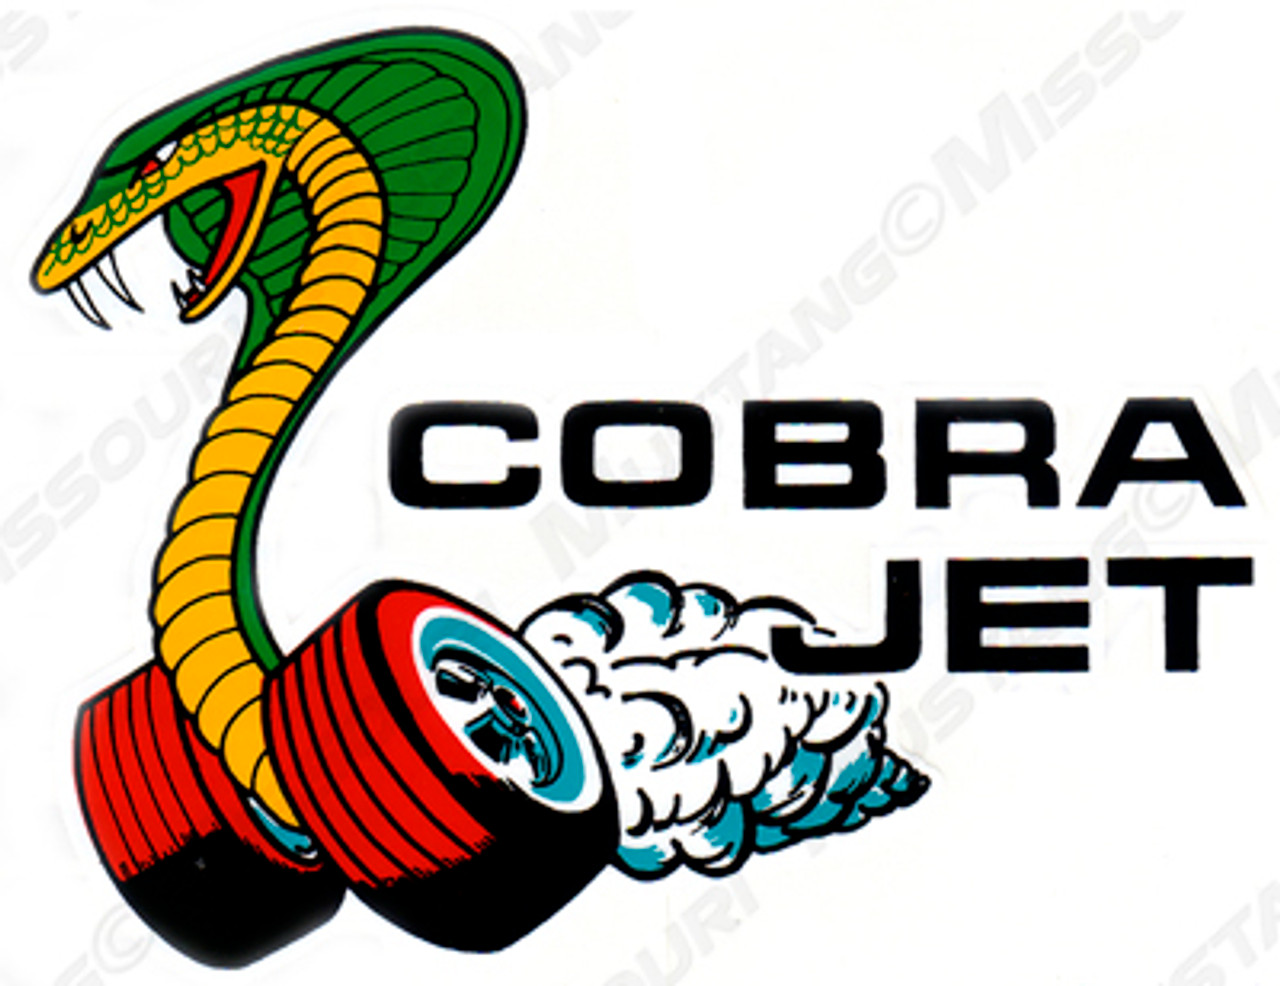 1964 73 ford mustang cobra jet decal rh missourimustang com  ford cobra logo vector